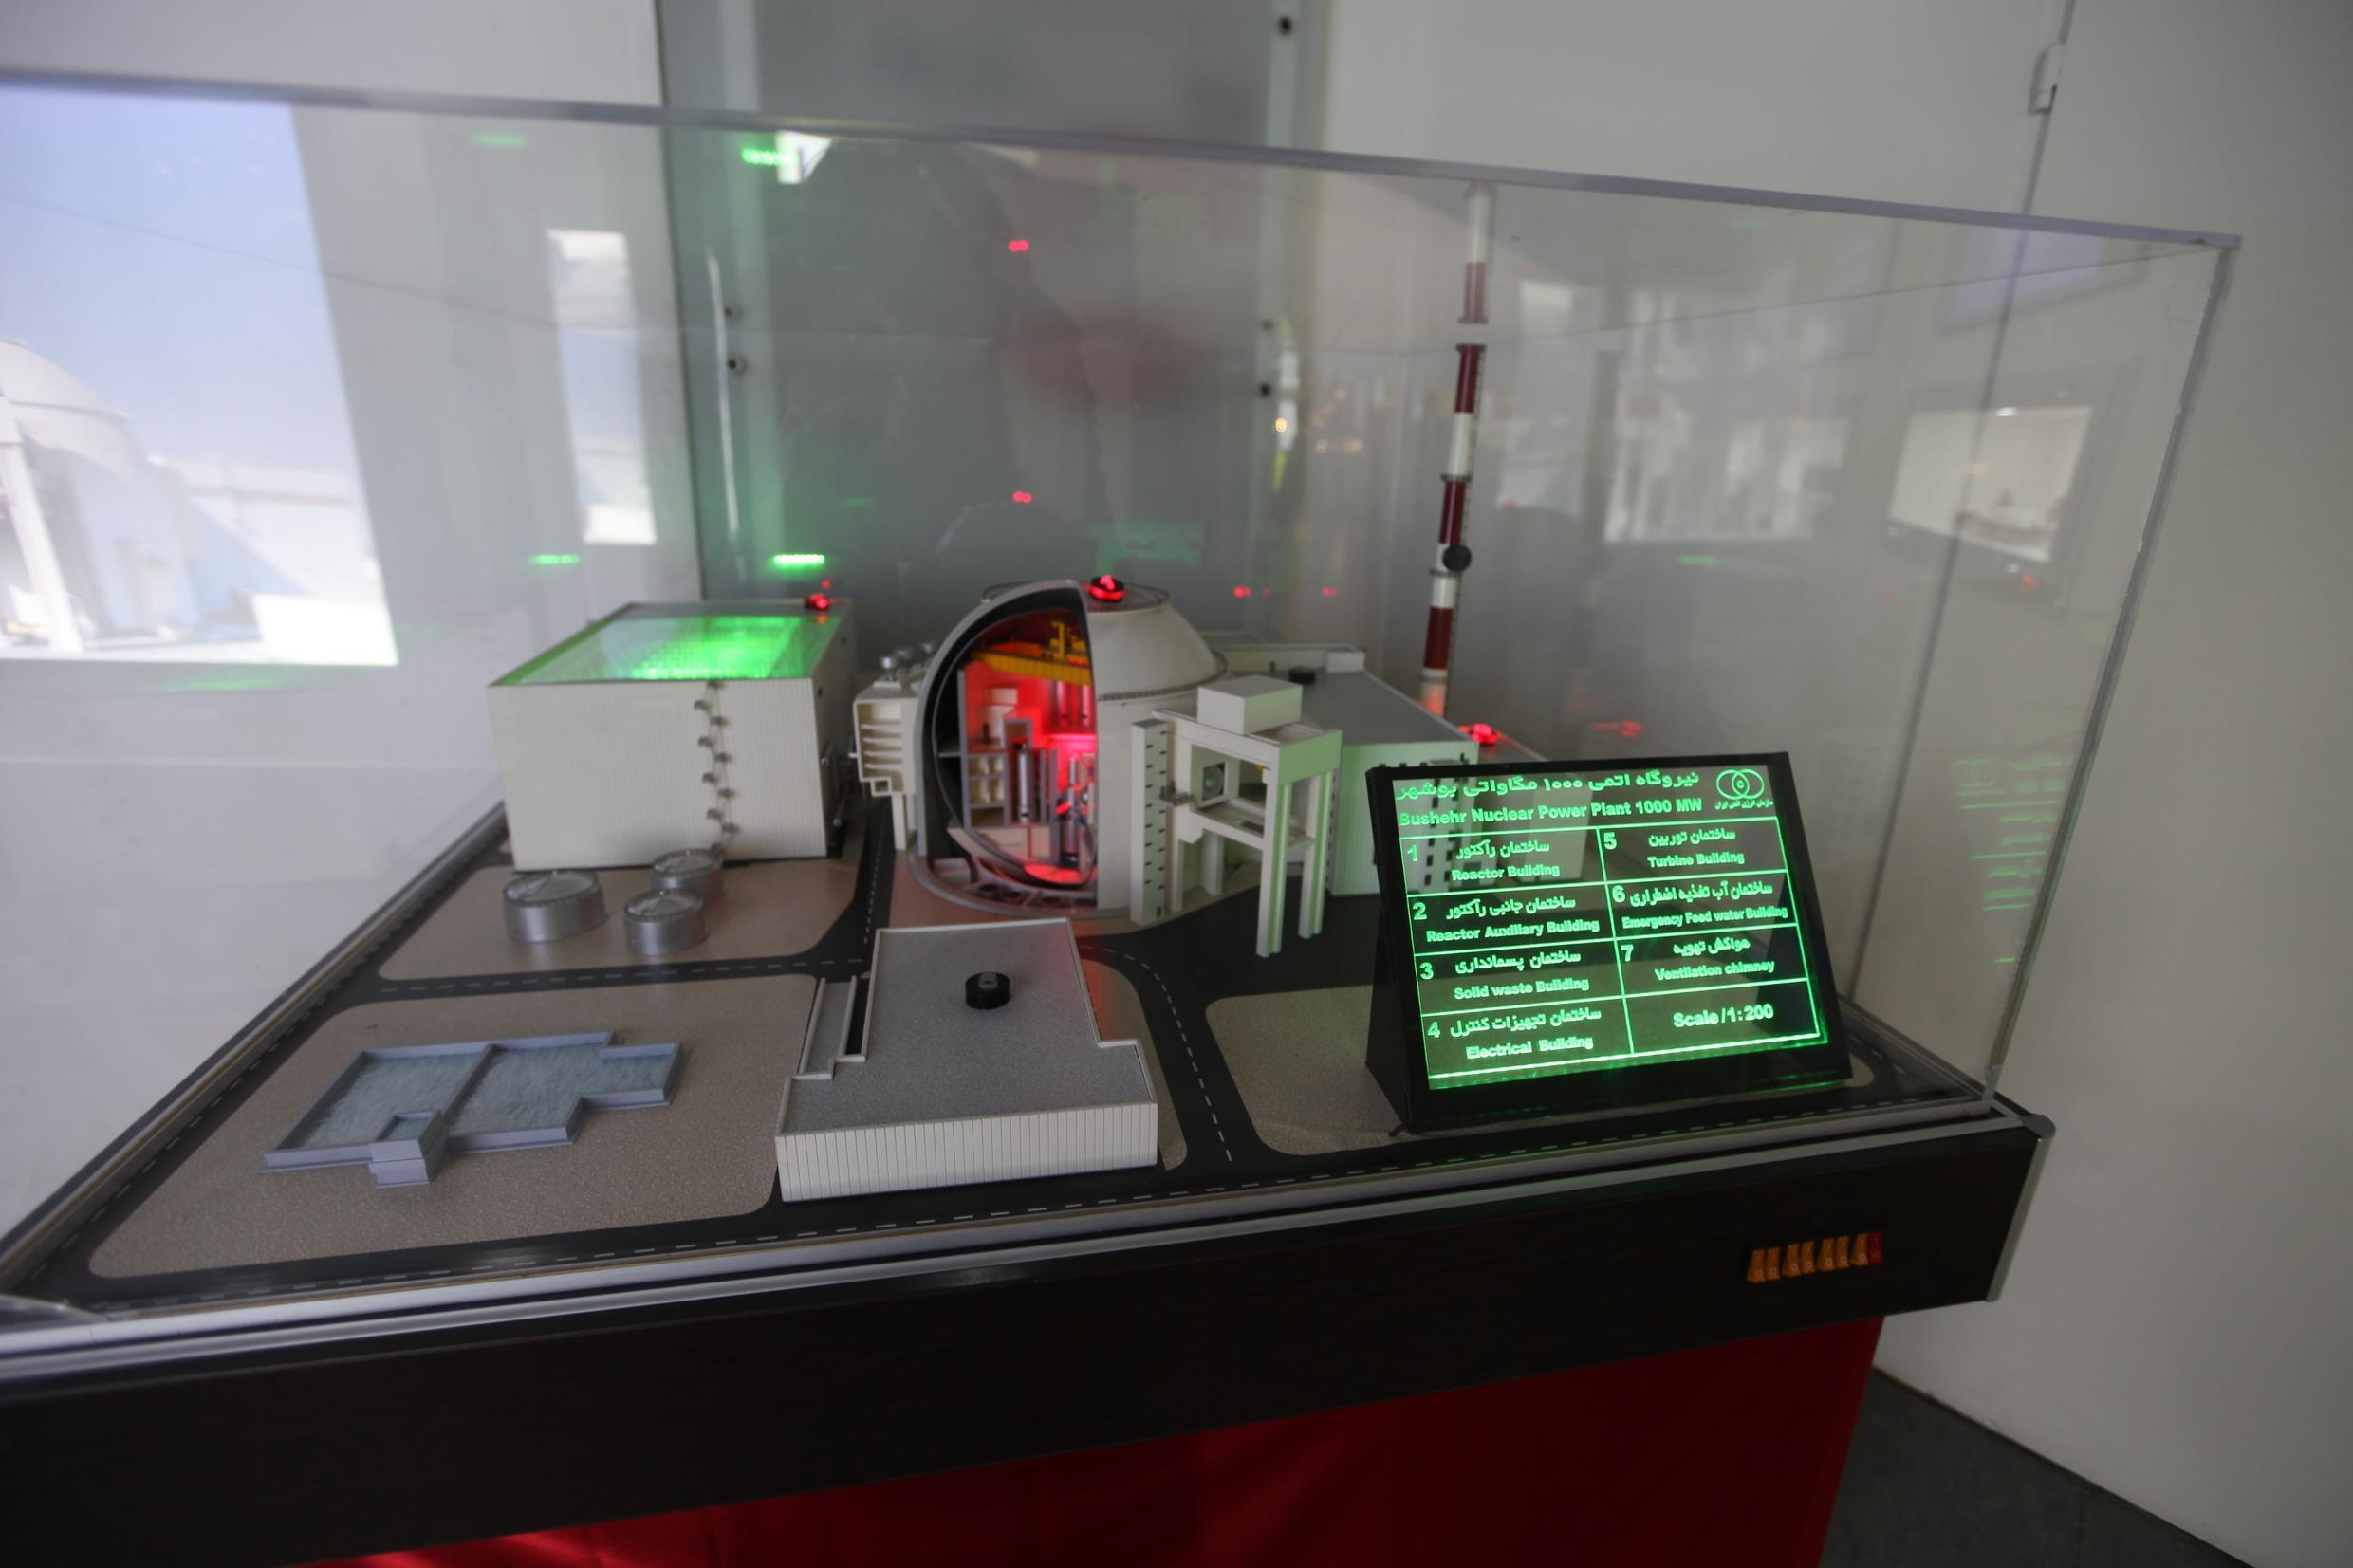 Scale model of nuclear power plant